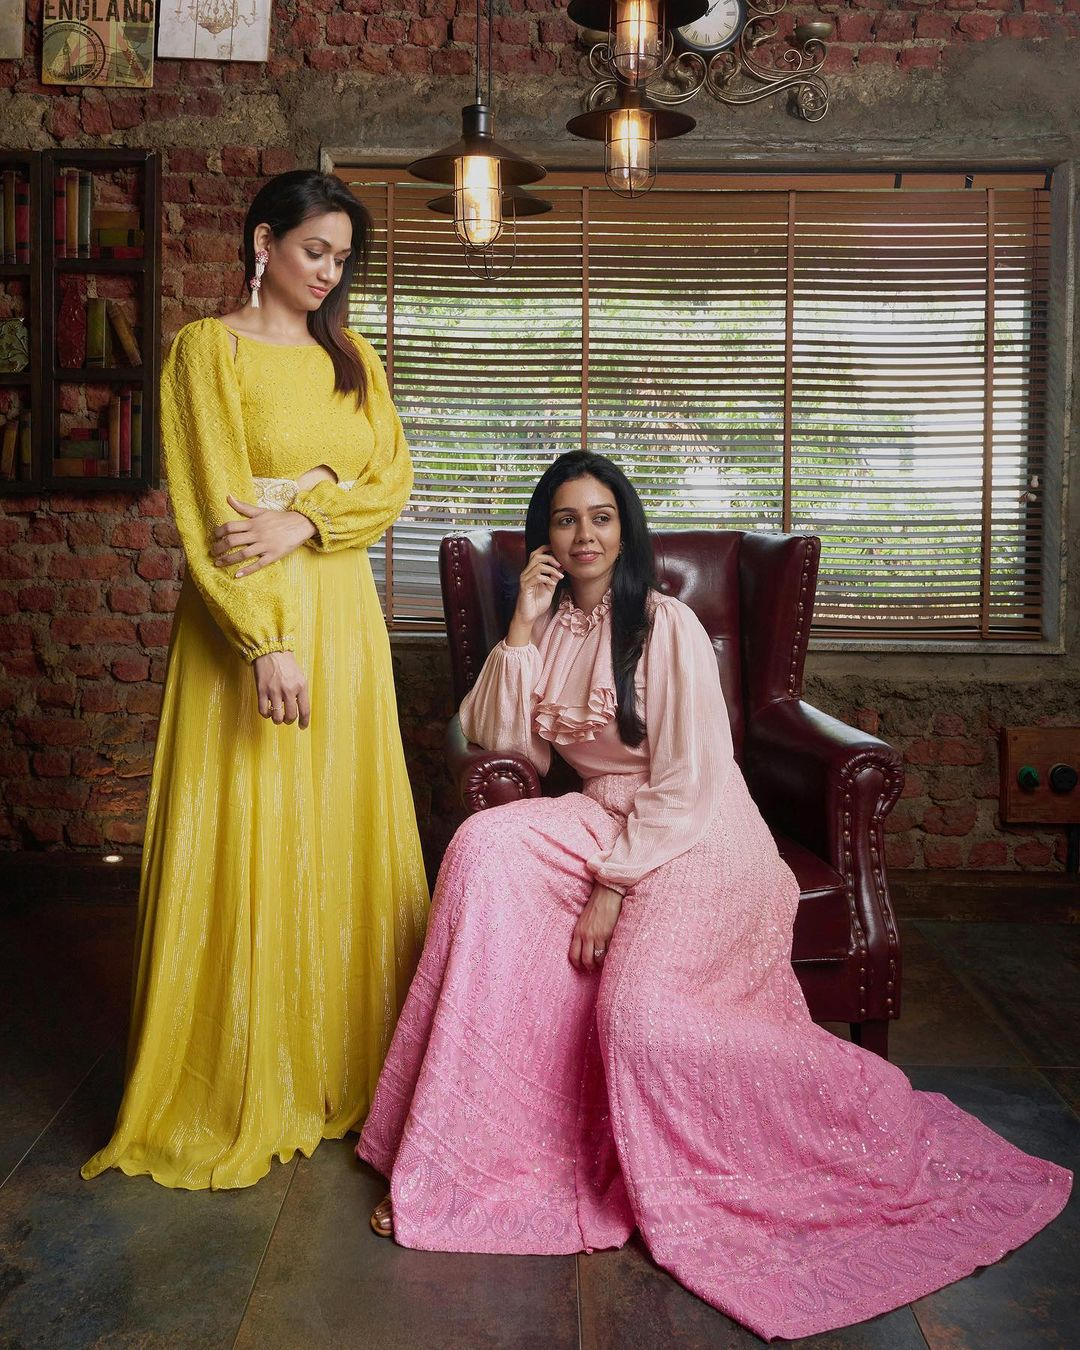 Señora Stories capturing tales of today's woman through her style strength and serenity. Padmaja Penametsa  founder of @padmaja.align wearing our one of the latest collection Señora Collections. | indo western dresses | western fusion dresses | indo western dresses plus size | 2020-11-13